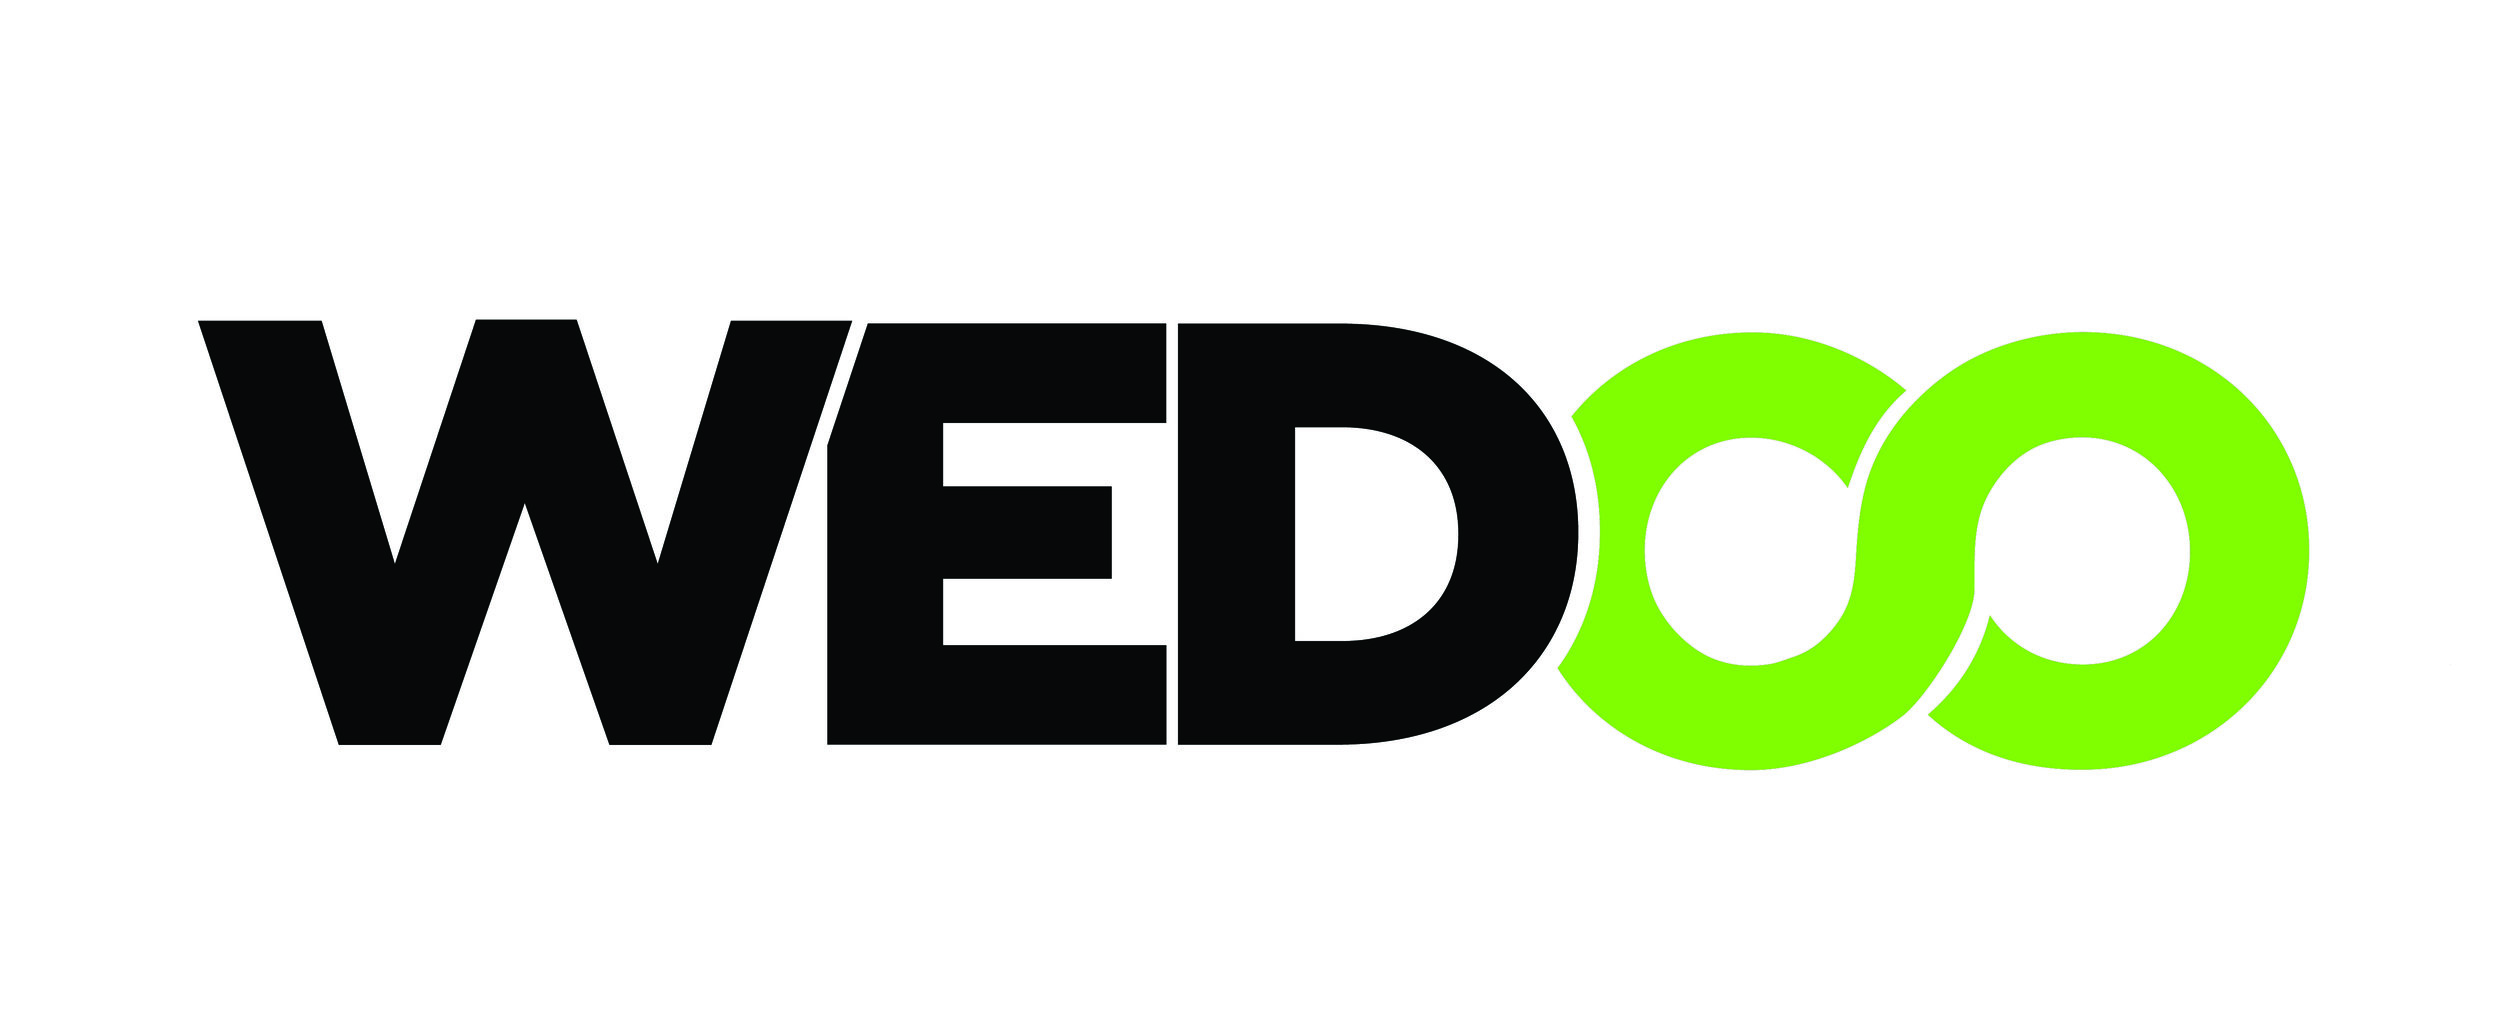 WEDCO_Logo copy on White.jpg